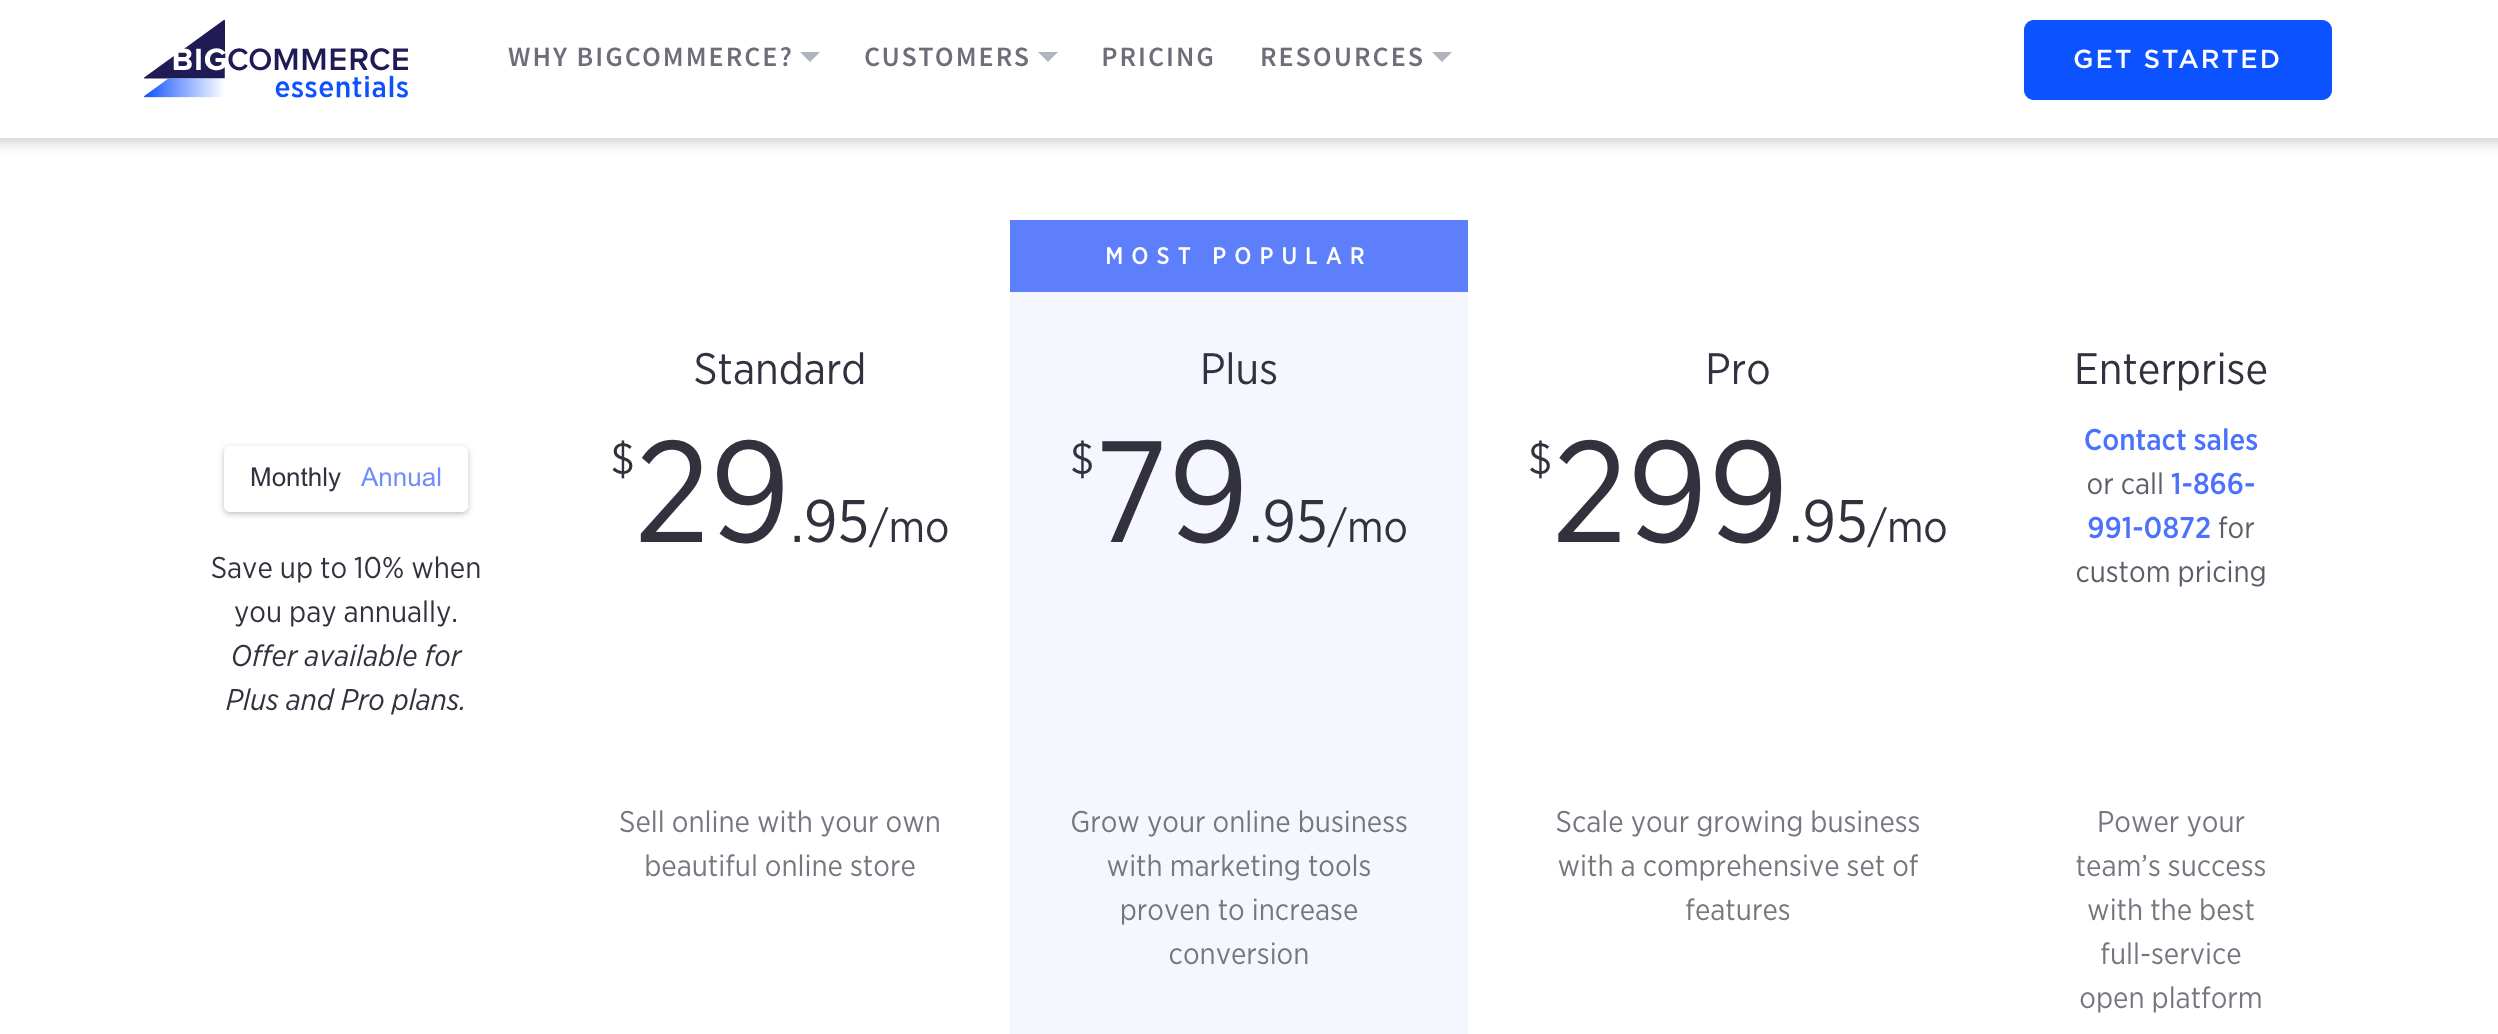 bigcommerce pricing for smb ecommerce